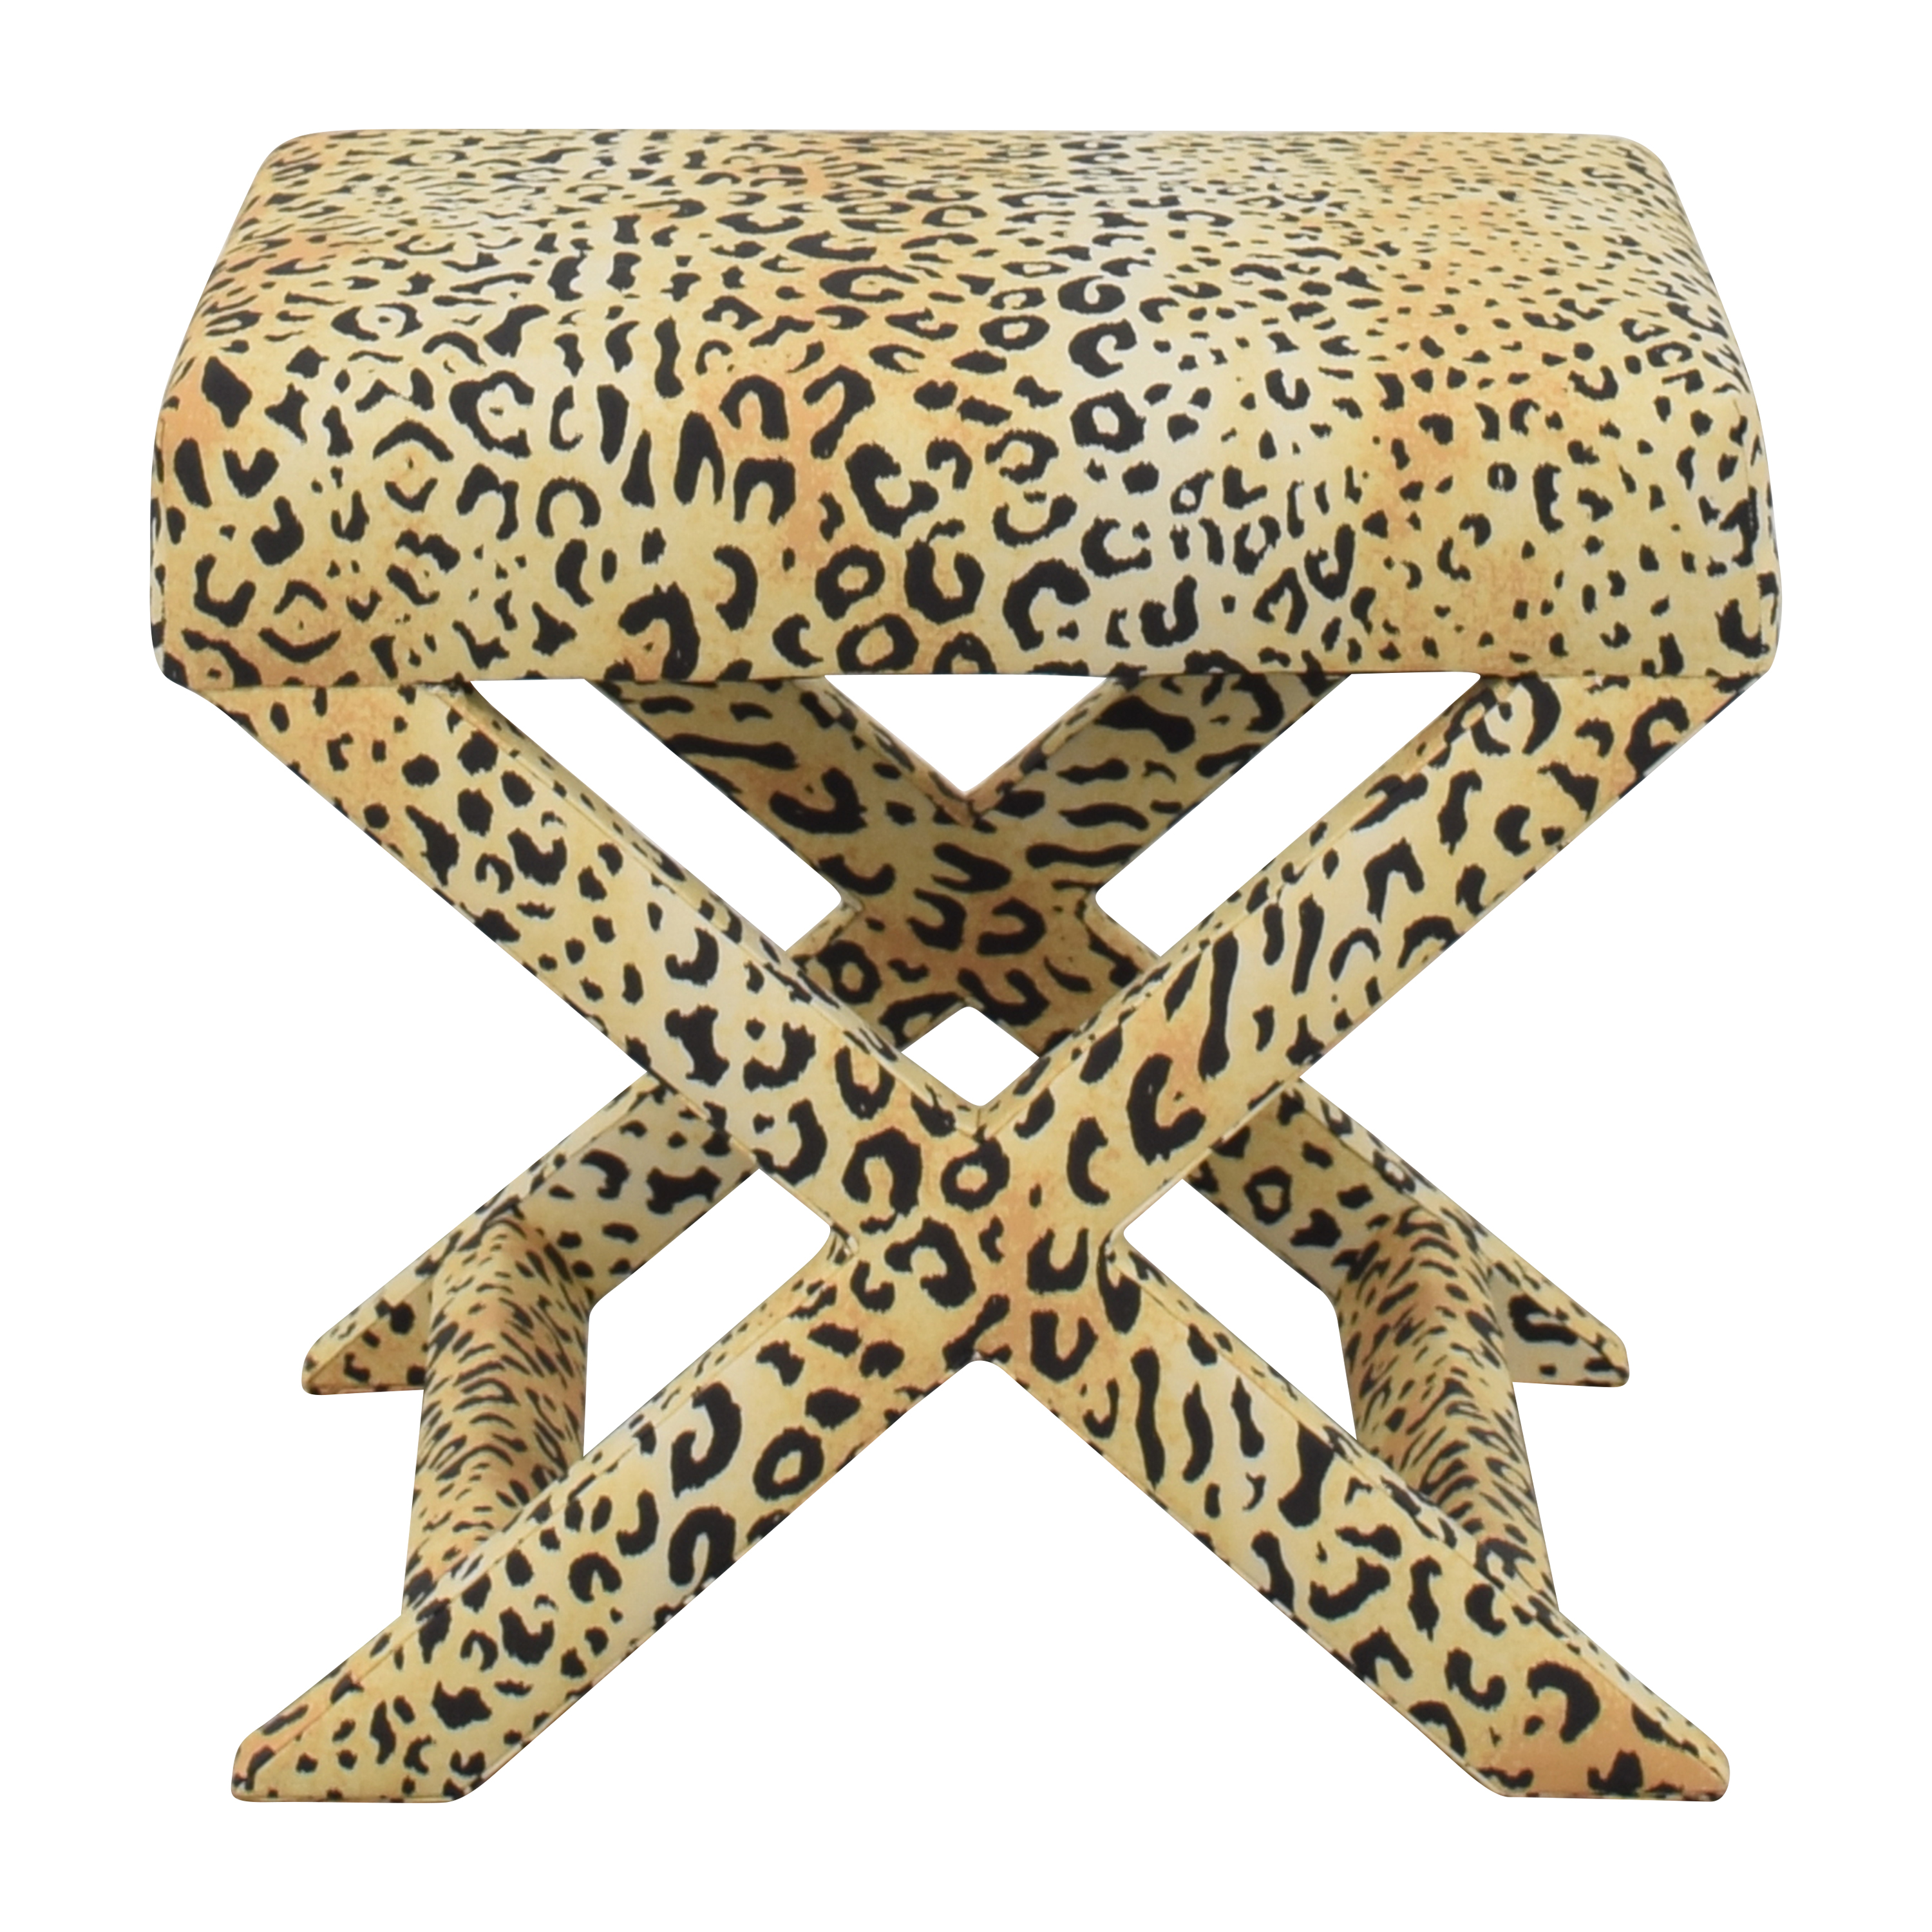 The Inside The Inside Leopard X Bench used